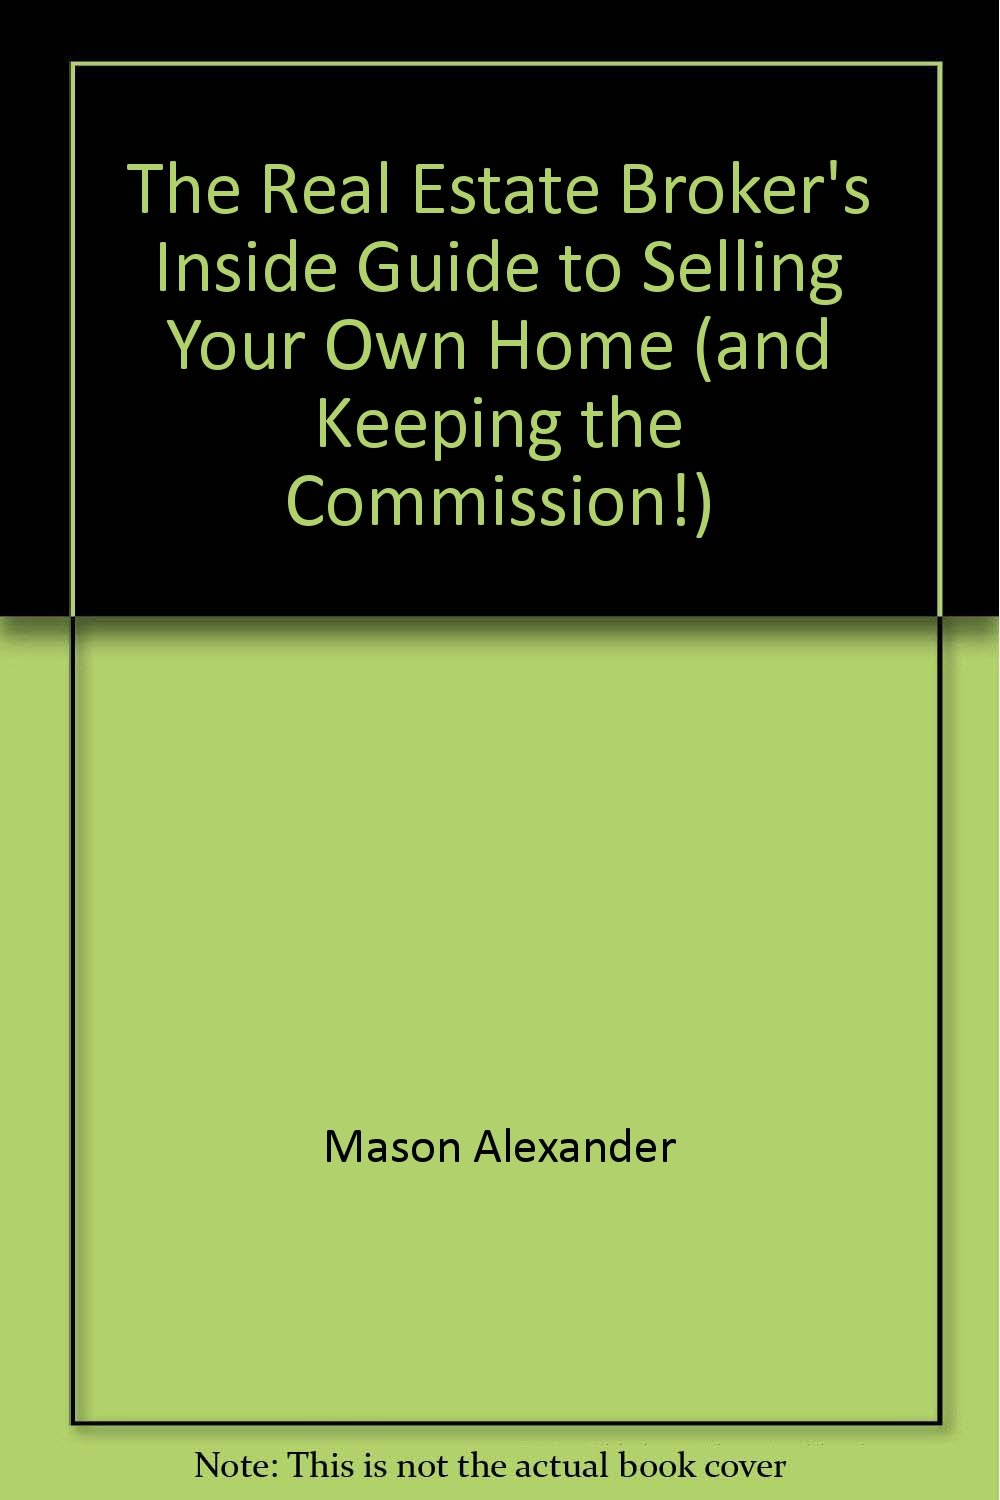 The real estate broker's inside guide to selling your own home (and keeping the commission!)